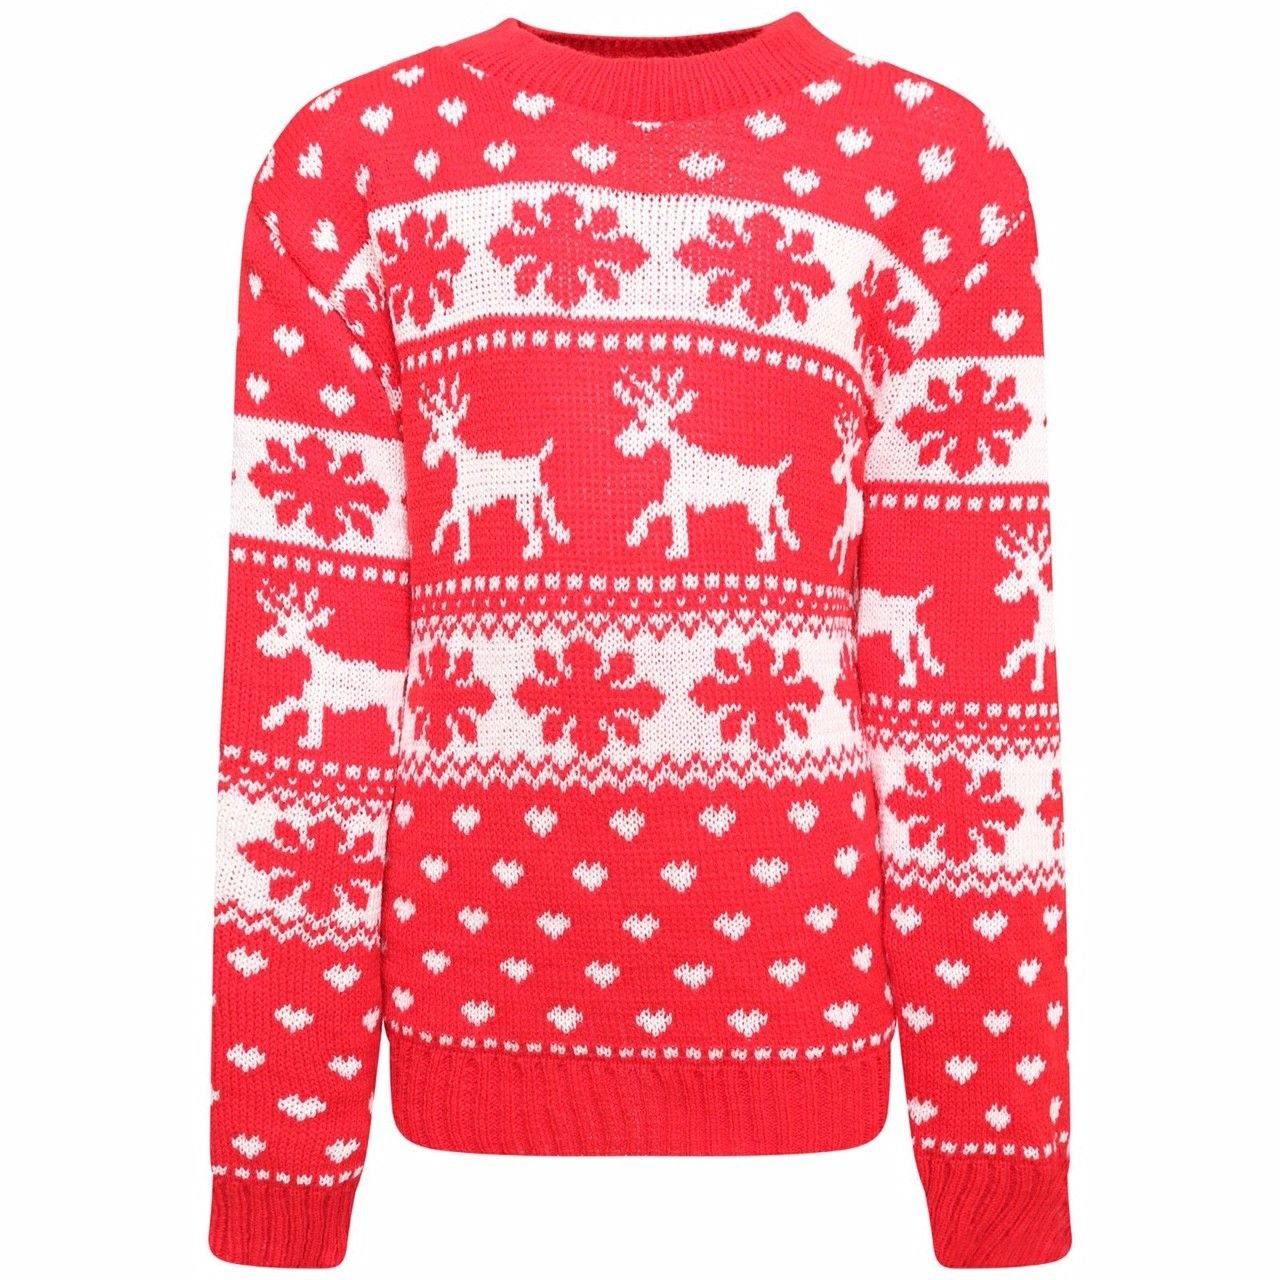 KIDS BOYS GIRLS XMAS CHRISTMAS NOVELTY REINDEER RUDOLPH POM POM FESTIVE JUMPER